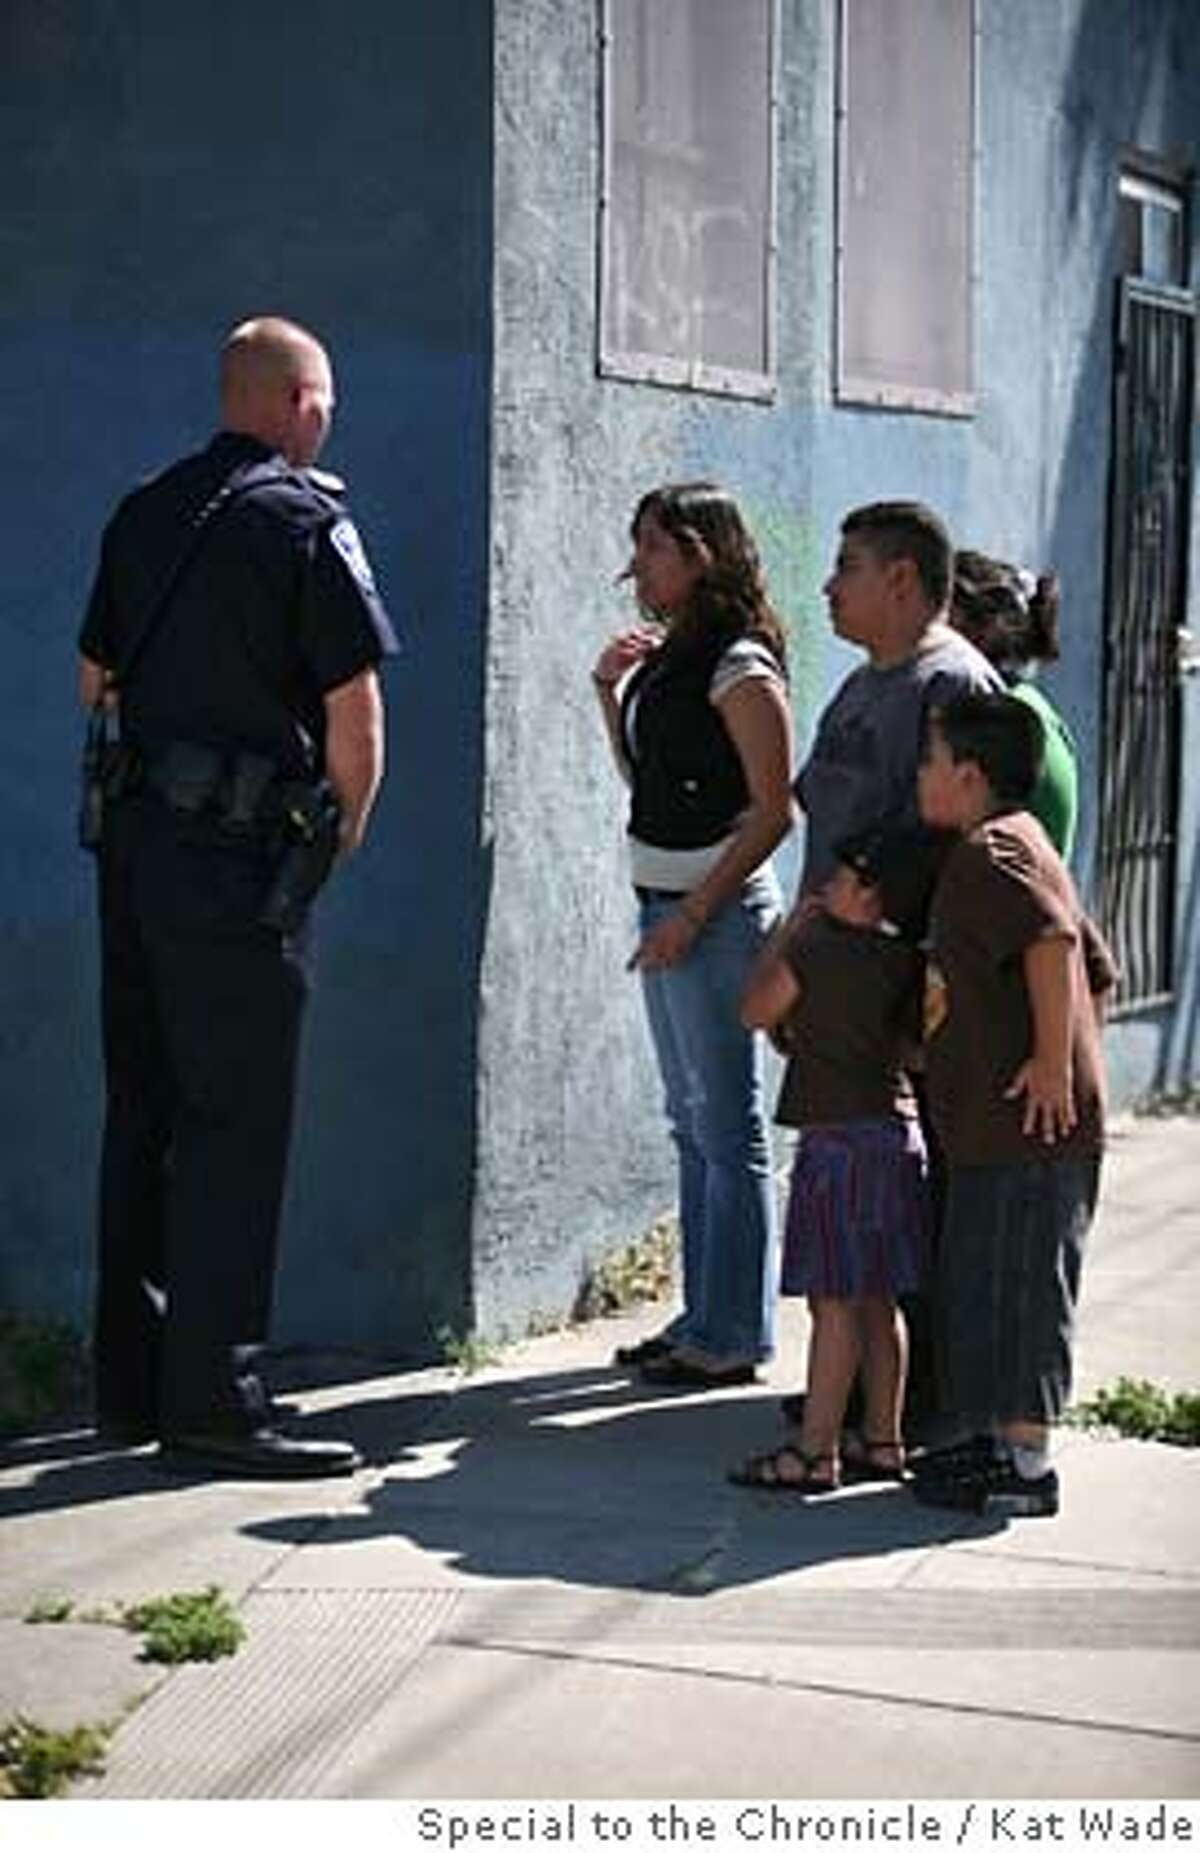 ###Live Caption:From left, Oakland police officer Frank Petersen, stops Marible Melendez, 14, and her family as they try to go home past the scene where a suspect was killed at 29th Avenue and East 7th Street in Oakland, Calif. on Saturday, April 26, 2008. Photo by Kat Wade / Special to the Chronicle###Caption History:From left, Oakland police officer Frank Petersen, stops Marible Melendez, 14, and her family as they try to go home past the scene where a suspect was killed at 29th Avenue and East 7th Street in Oakland, Calif. on Saturday, April 26, 2008. Photo by Kat Wade / Special to the Chronicle###Notes:Frank Petersen, stops Marible Melendez, 14, (CQ< subjects) The others left before they could give their names I heard that the dead suspect man hijacked a car and had the owner, an old-man in handcuffs.###Special Instructions:Mandatory Credit for photographer and S.F. CHRONICLE/No Sales - mags out